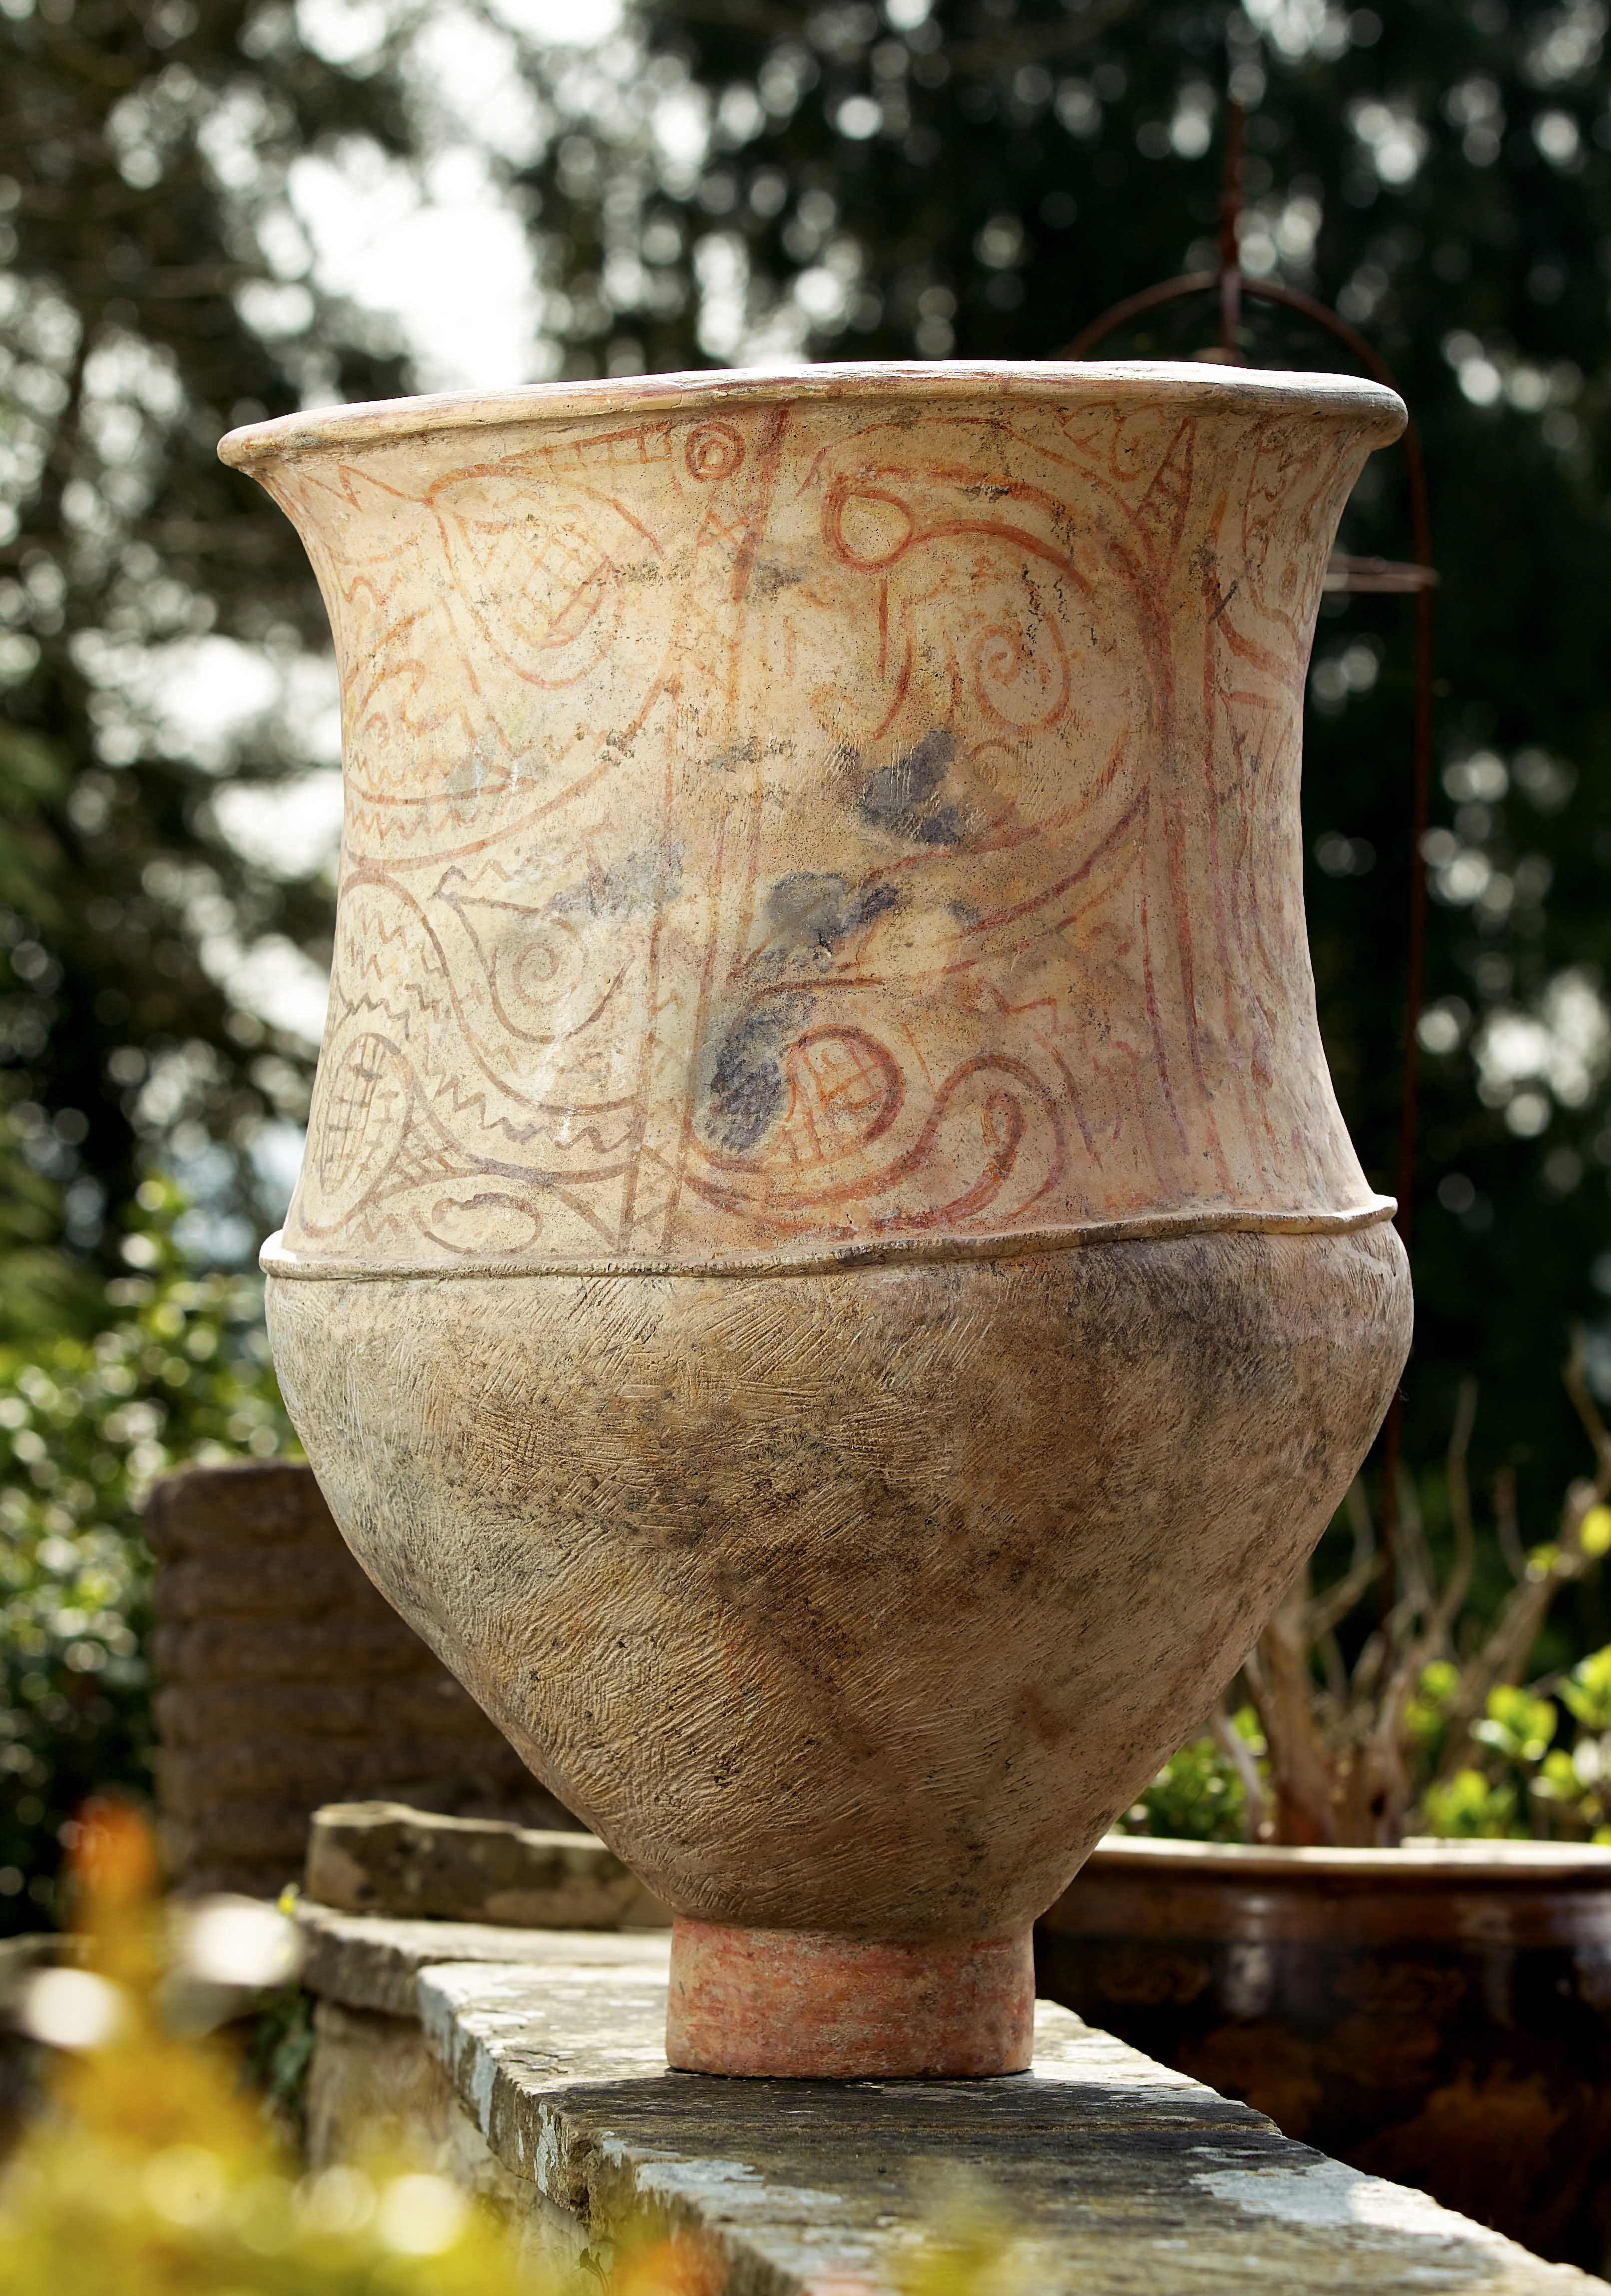 Old pots to go on sale for £5,000.